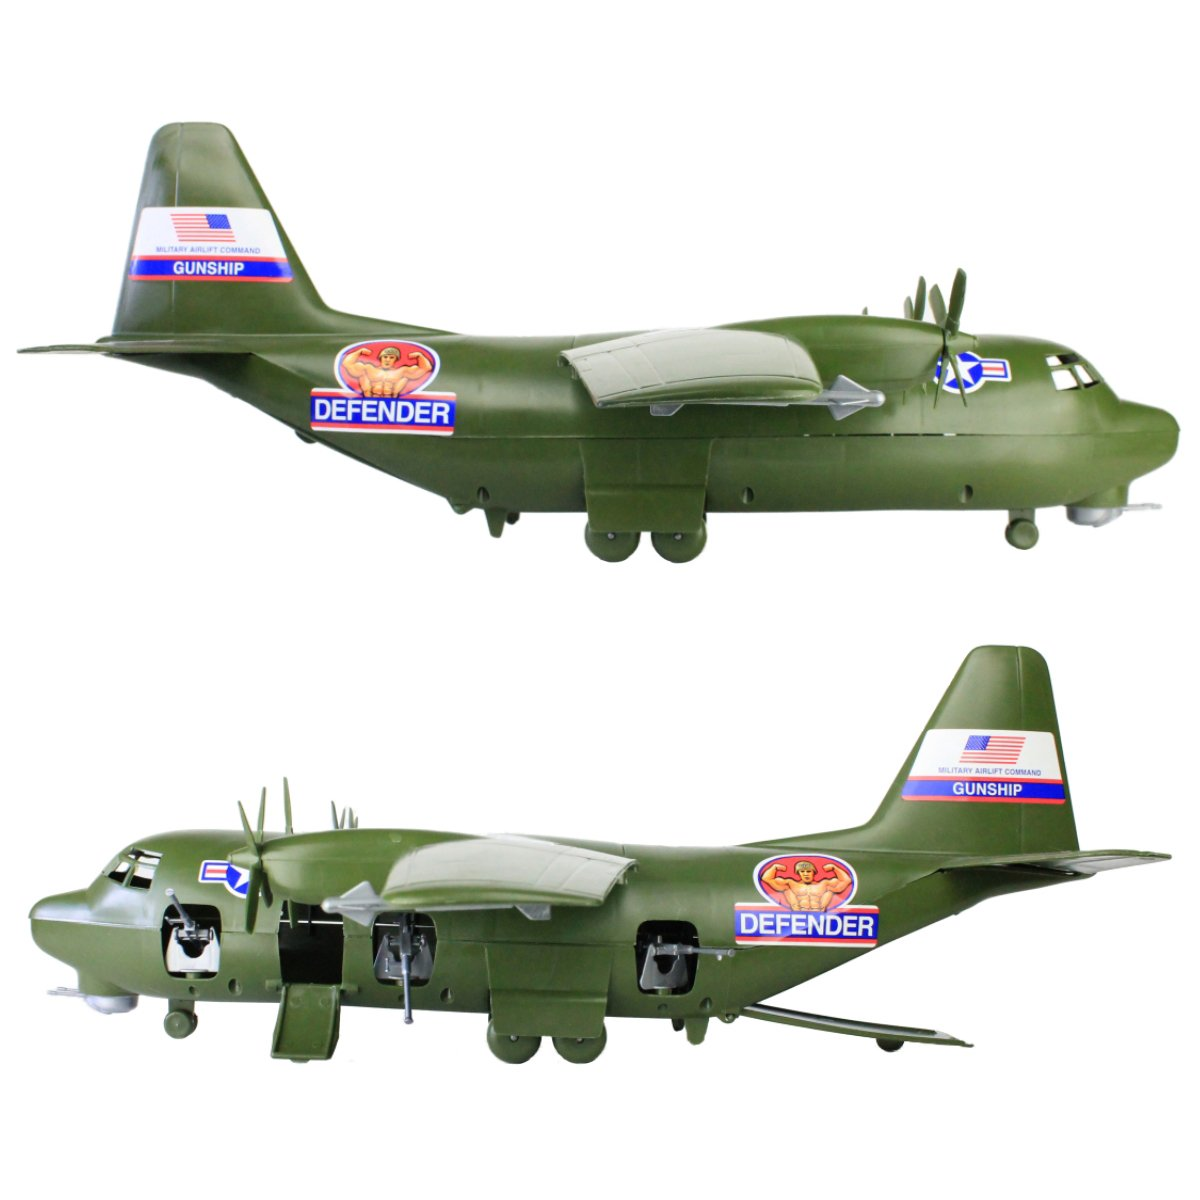 TimMee Plastic Army Men C130 Playset -27pc Giant Military Airplane Made in USA by Tim Mee Toy (Image #6)